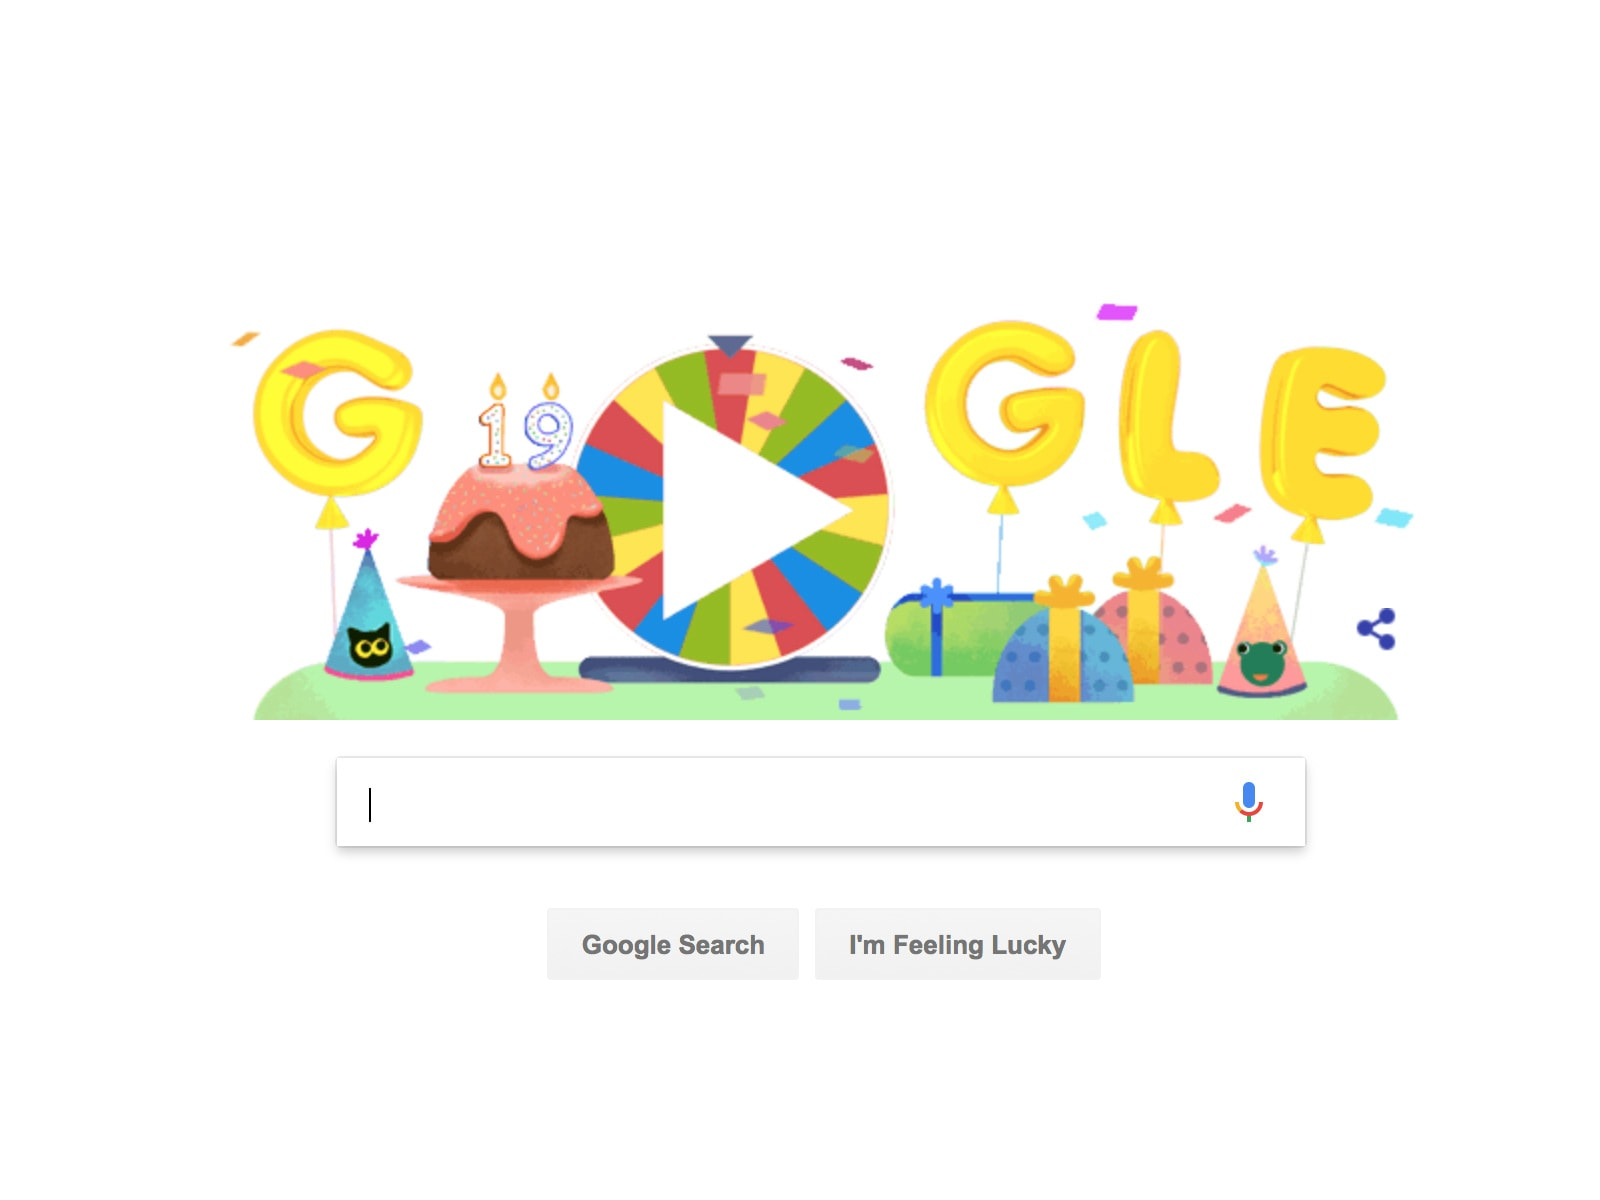 Google Unwraps 19 Past Doodle Games For Its 19th Birthday